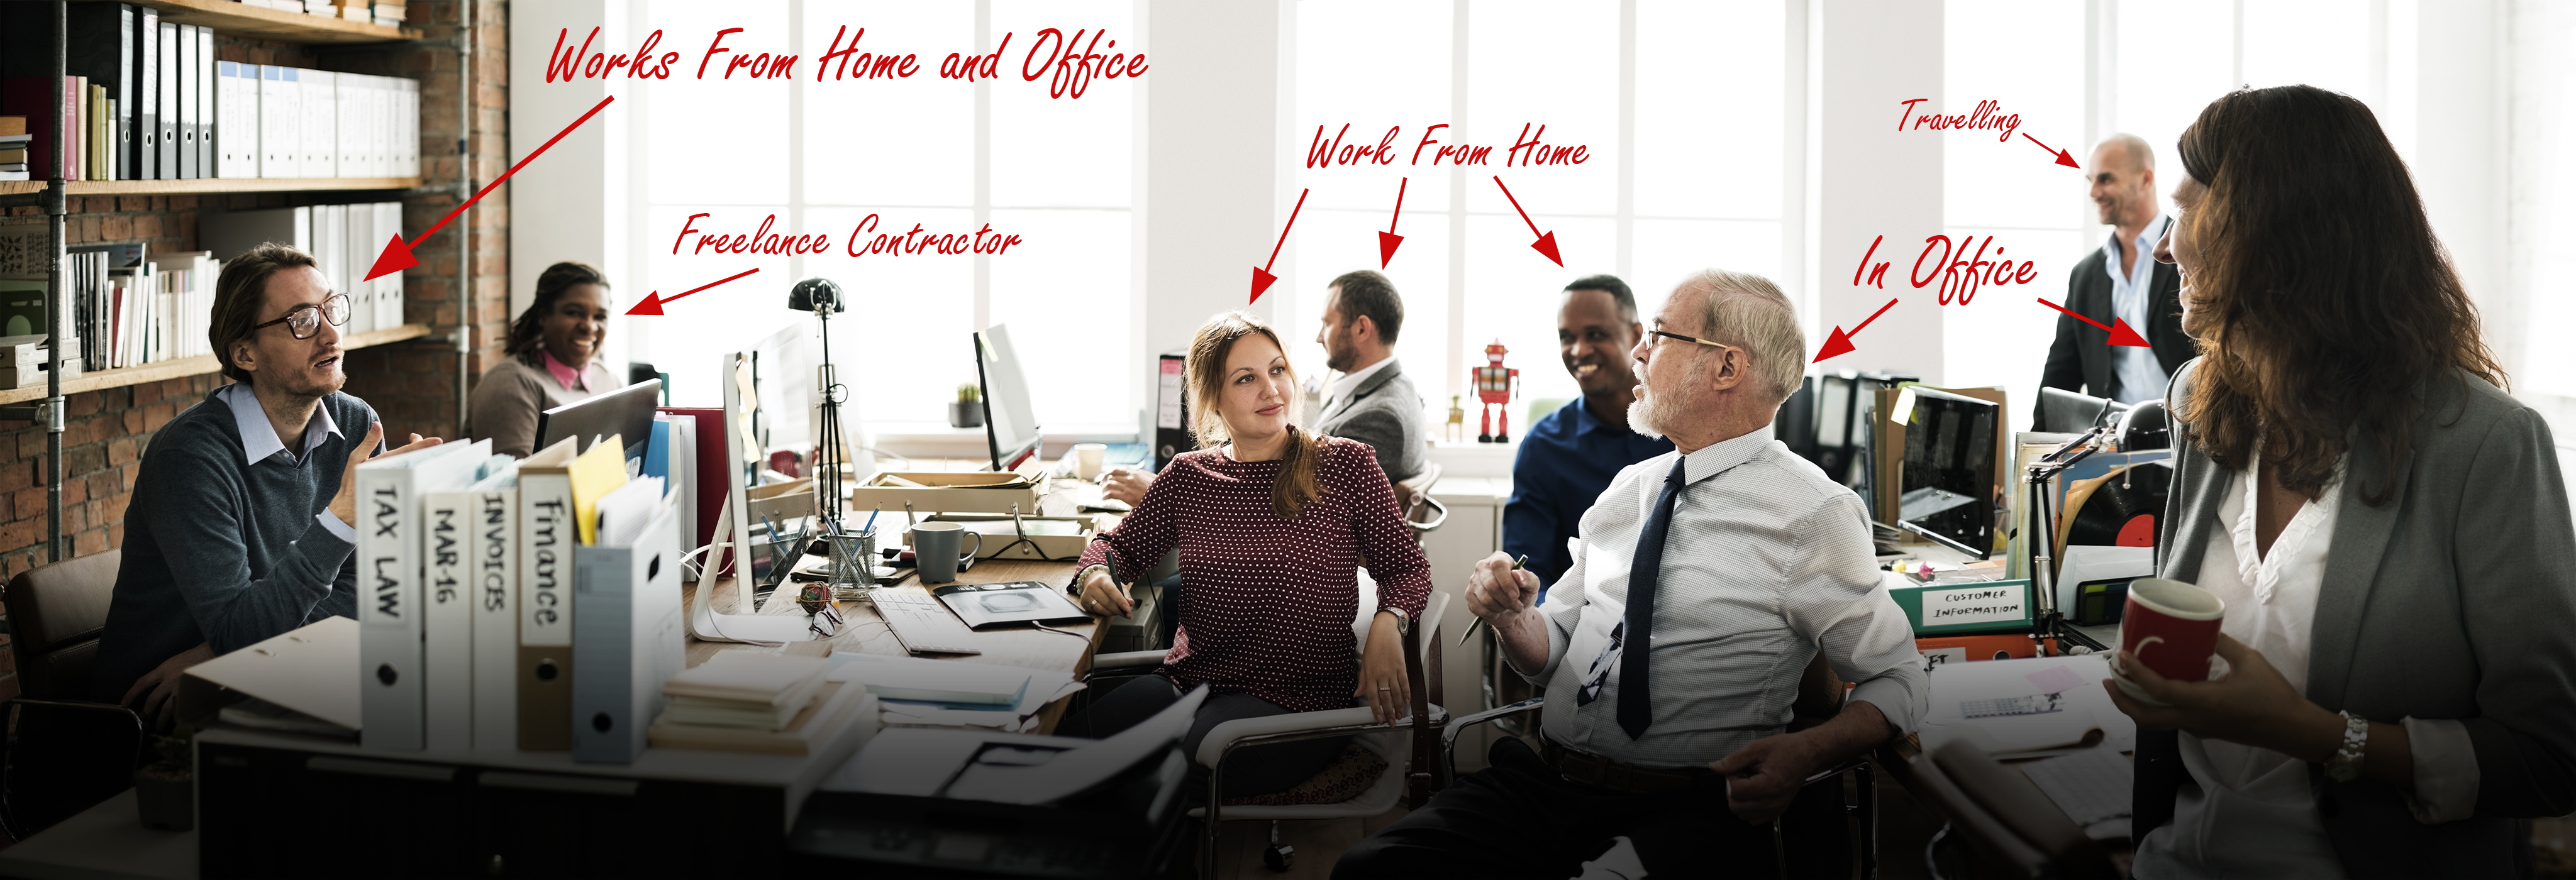 office workers - we work differntly image